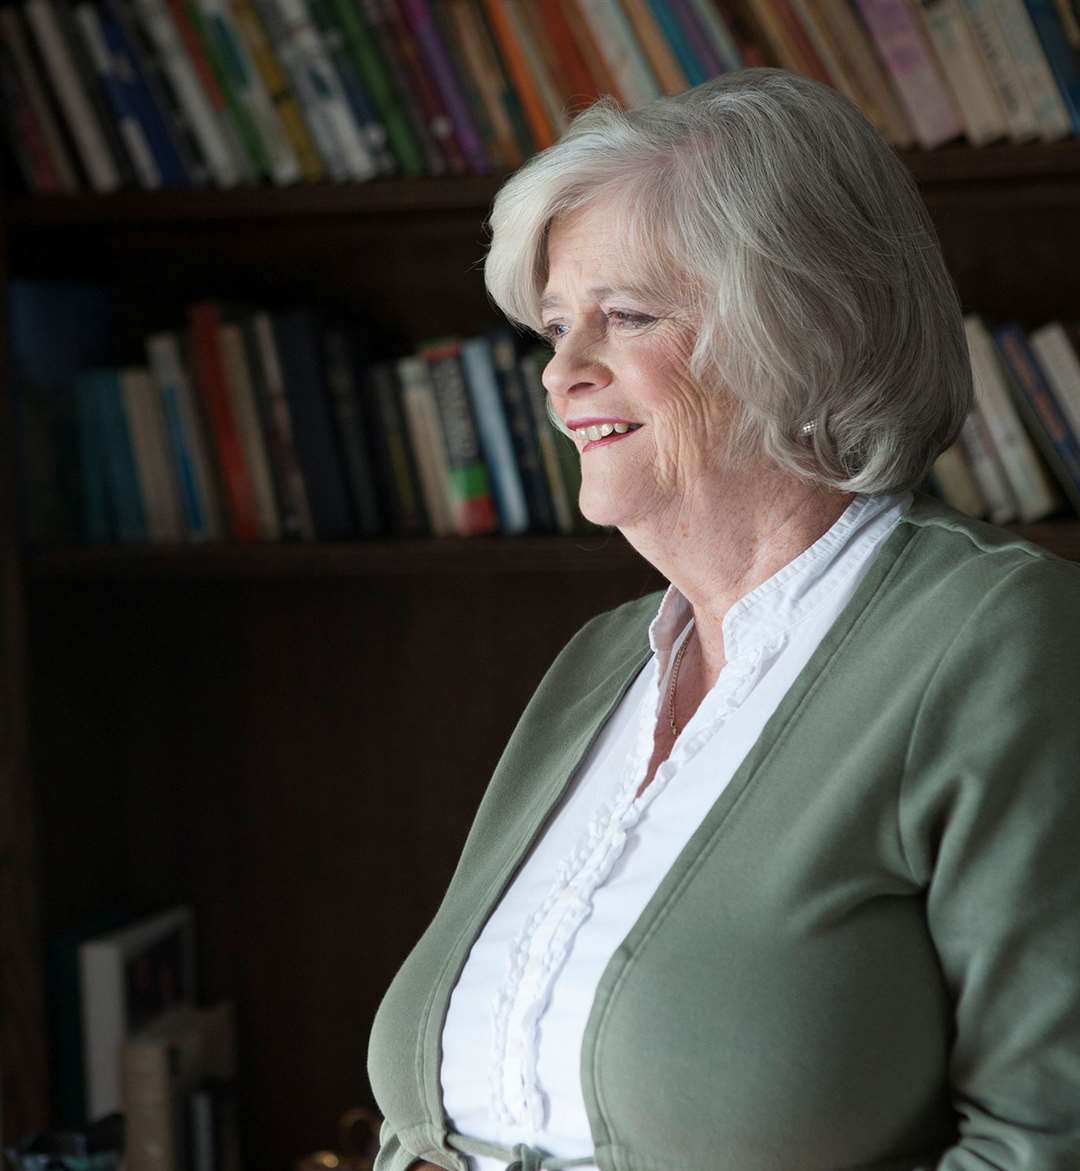 Ann Widdecombe will be sharing an evening with audiences in Kent